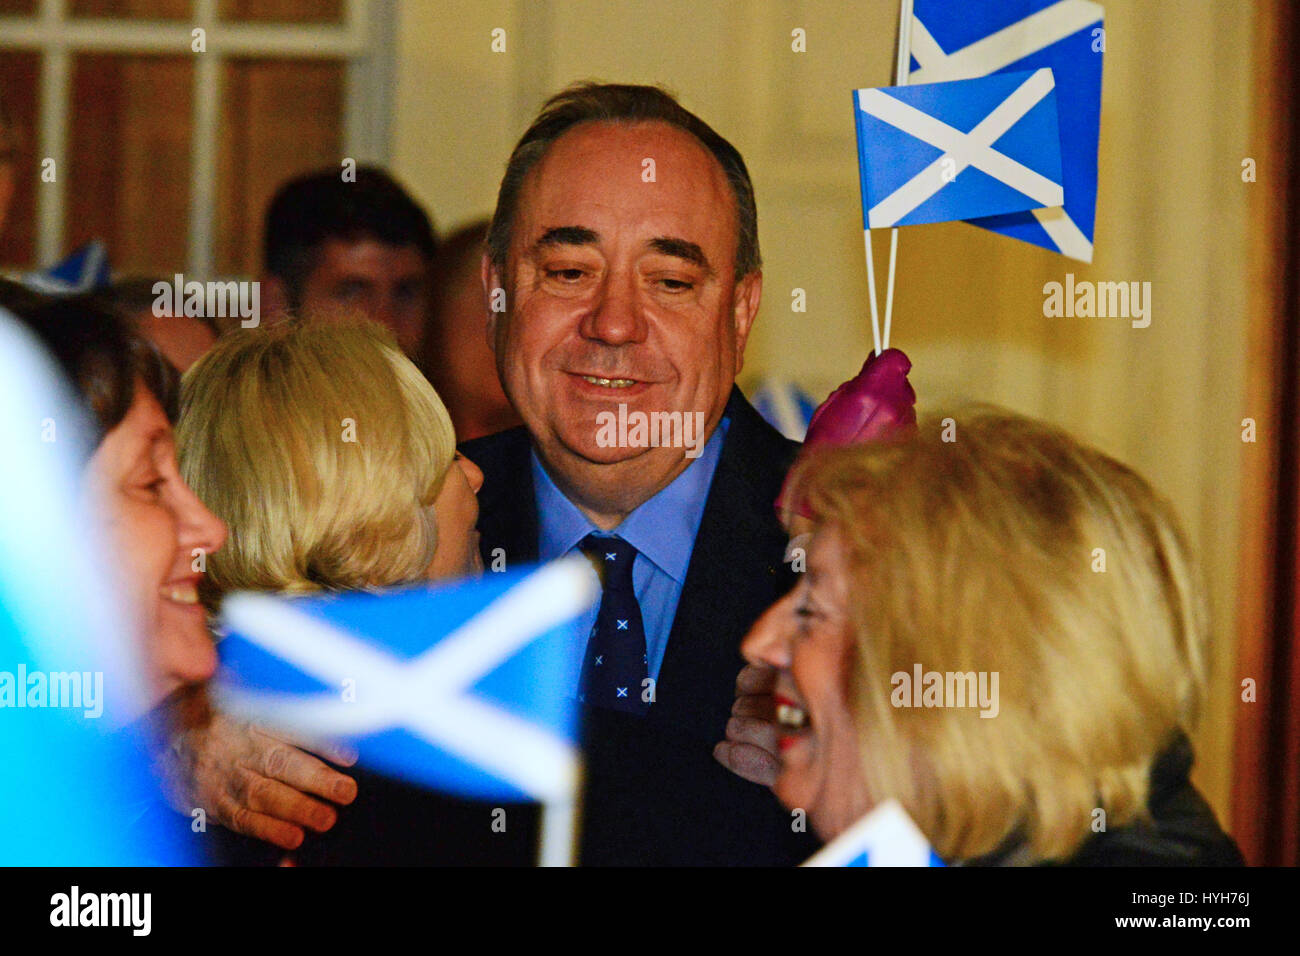 First Minister Alex Salmond And His Wife High Resolution Stock Photography And Images Alamy